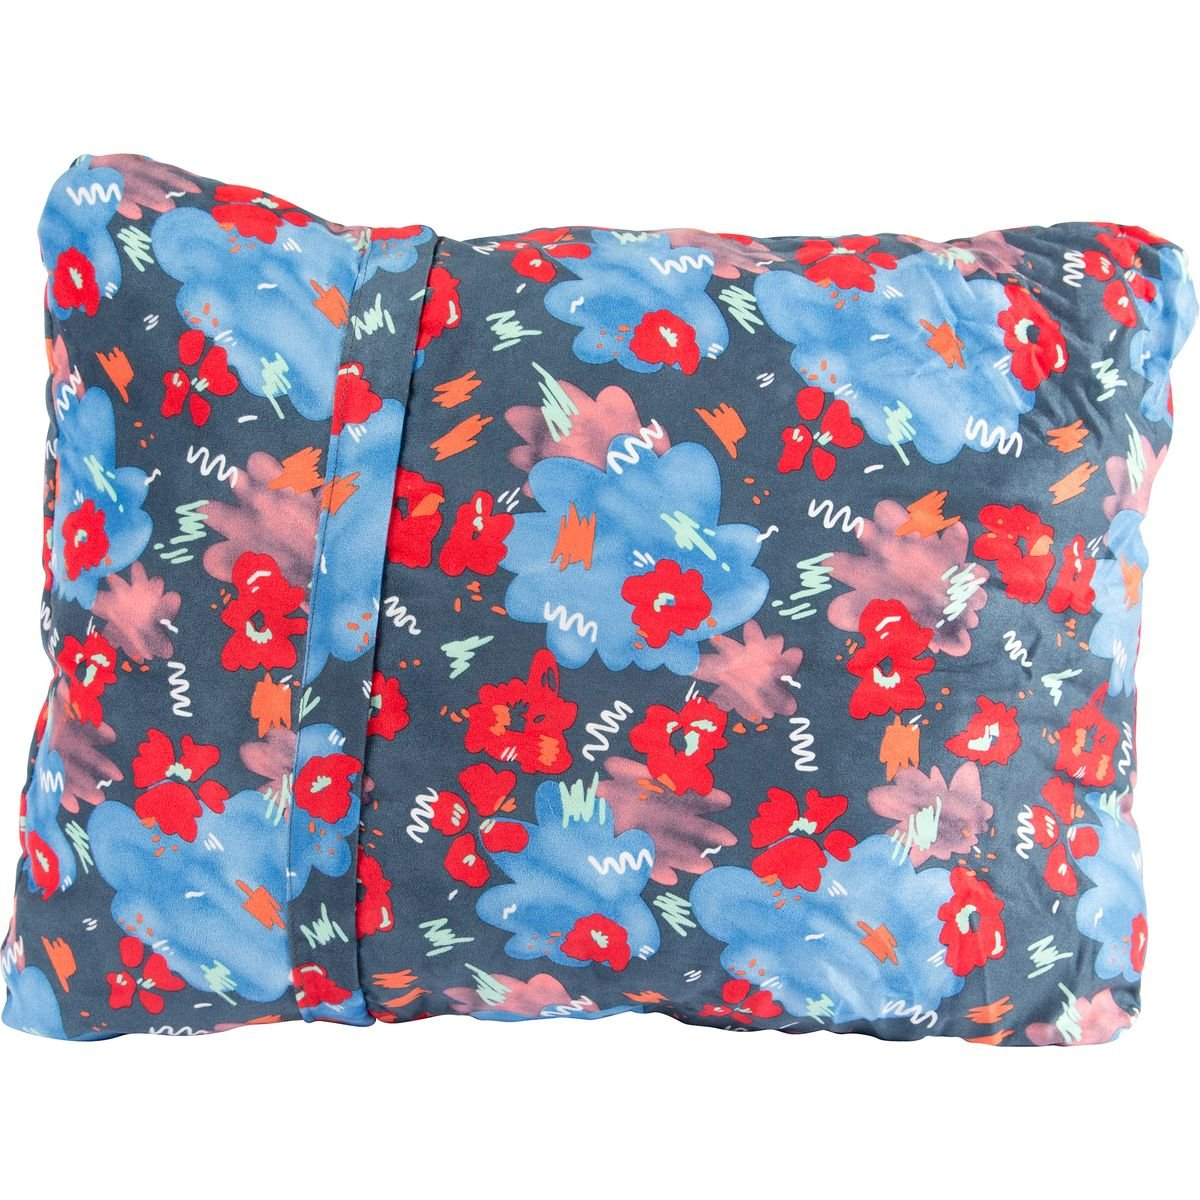 sleep thermarestsleepsystem a system outdoors review double rest com therm compressible pillow feedthehabit